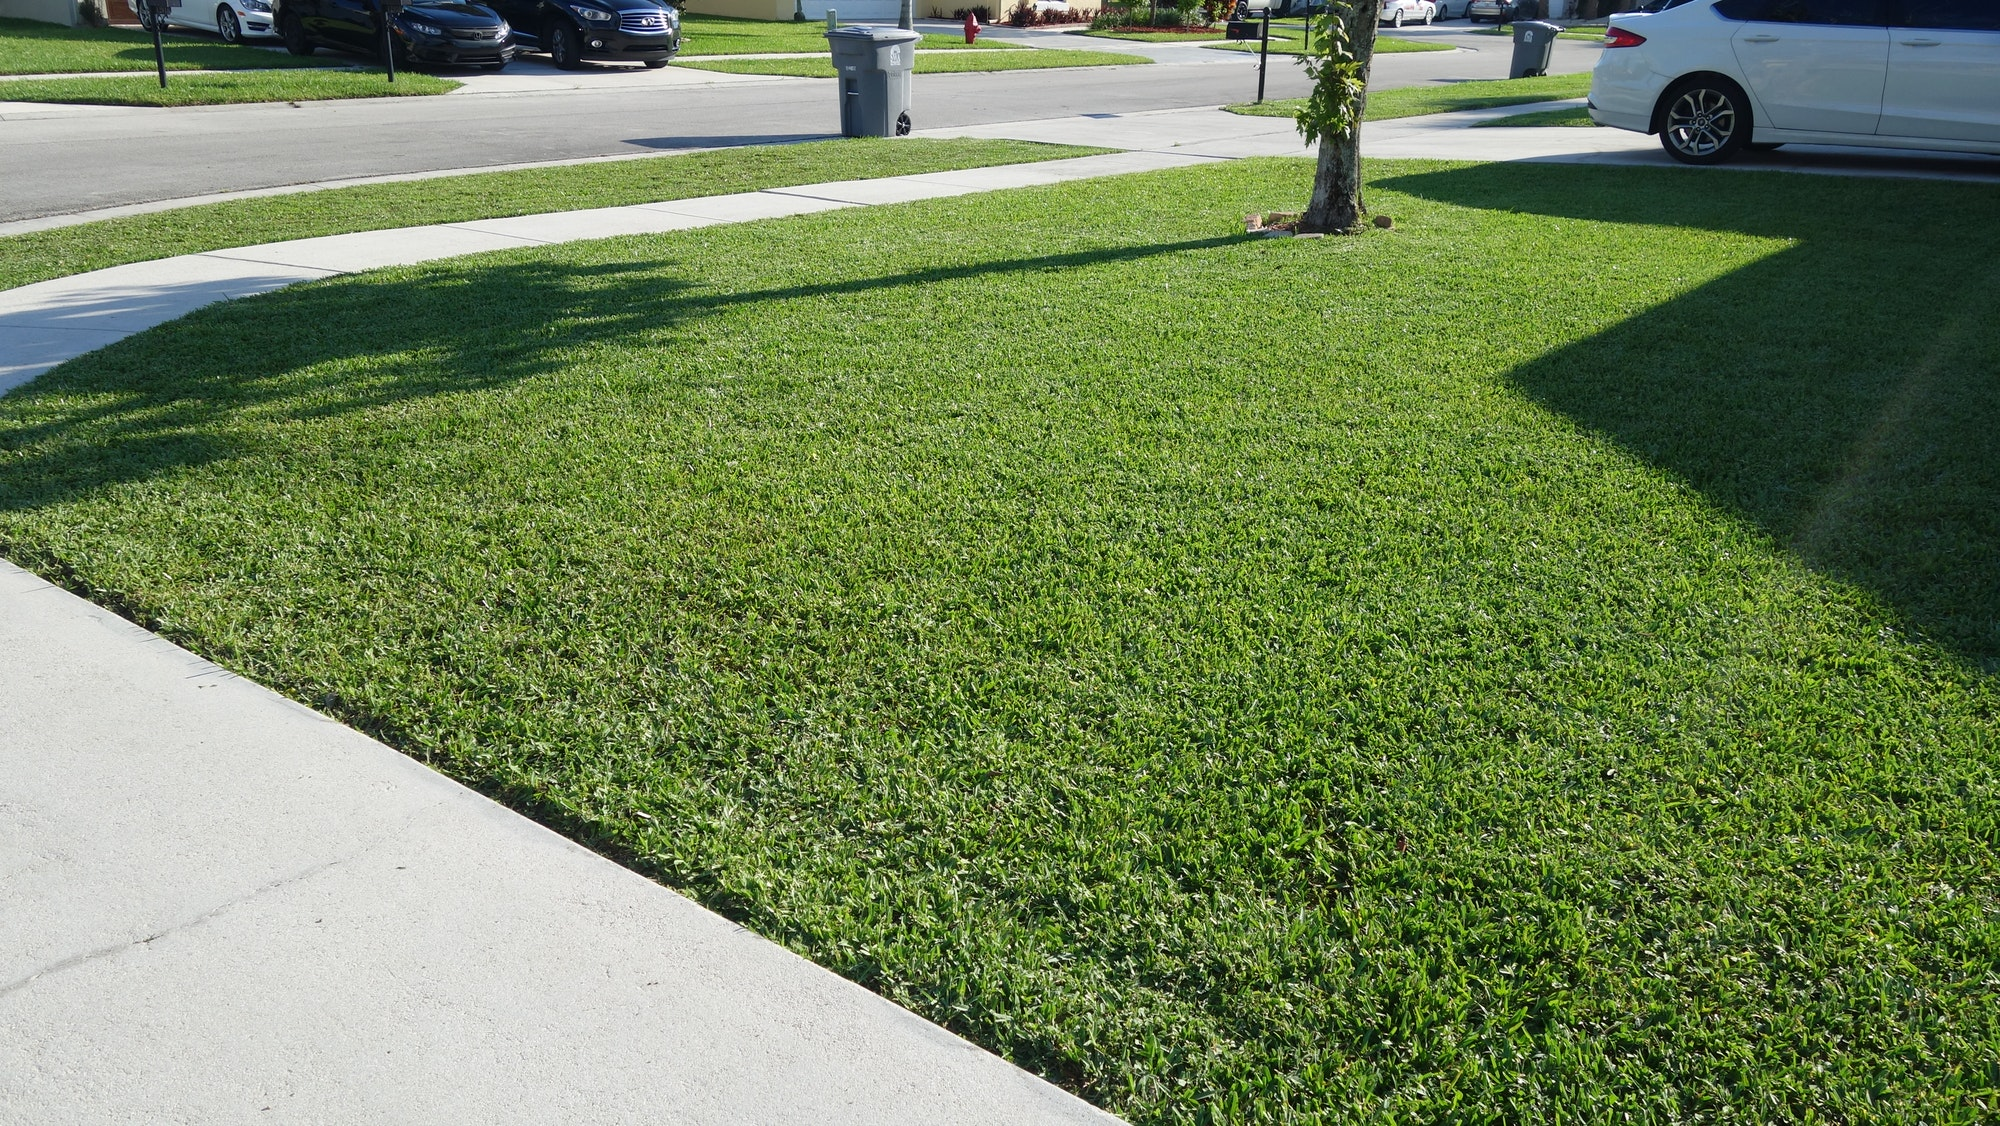 Green Grass Covering A Florida Home's Front Yard